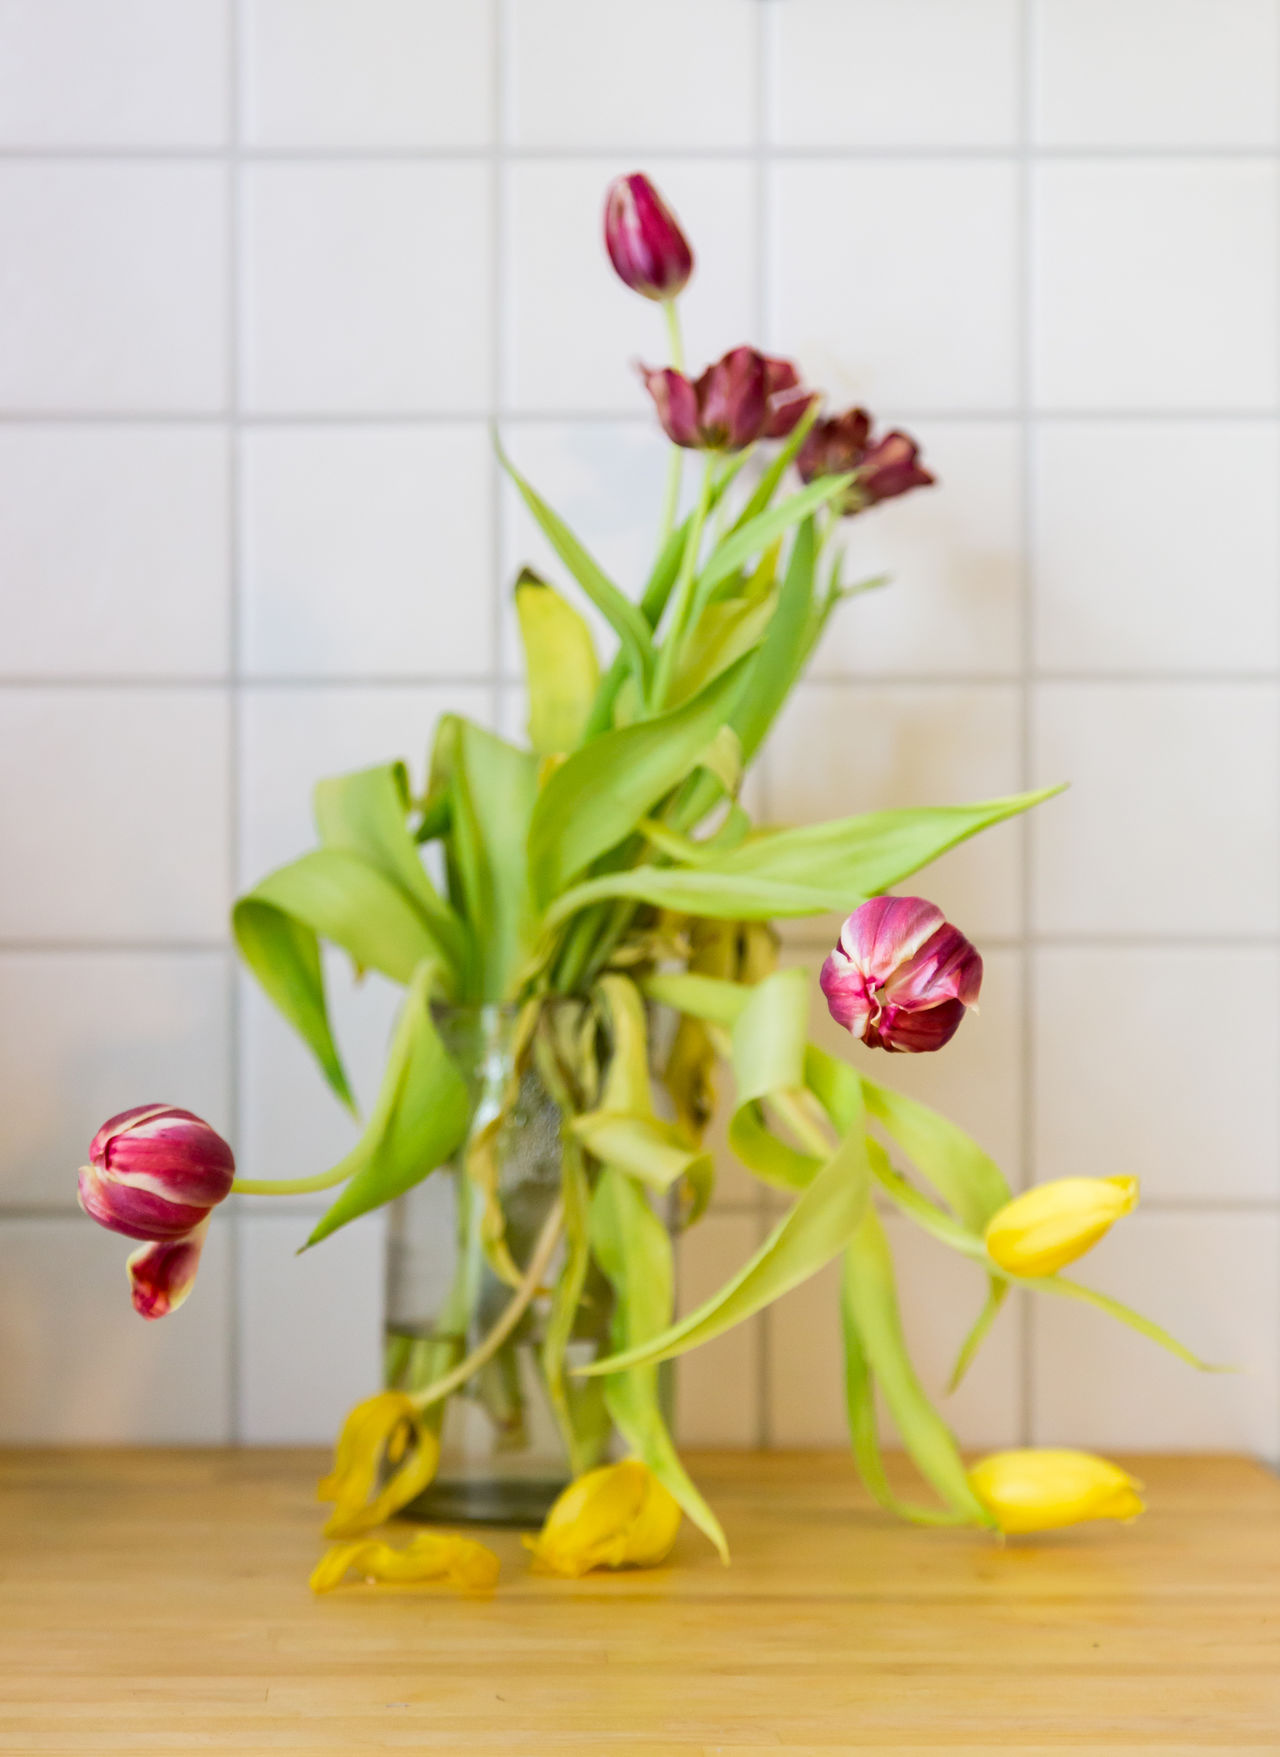 Wilted Tulips Close-up Flower Flower Head Indoors  Limp No People Old Red Red Flower Schlaff Tulips Tulpen Vase Verdorrt Verwelkt Welk Wilted Wilted Flower Wilted Flowers Wilting Wilting Flowers Withered  Withered Flower Withered Tulips Yellow Flower